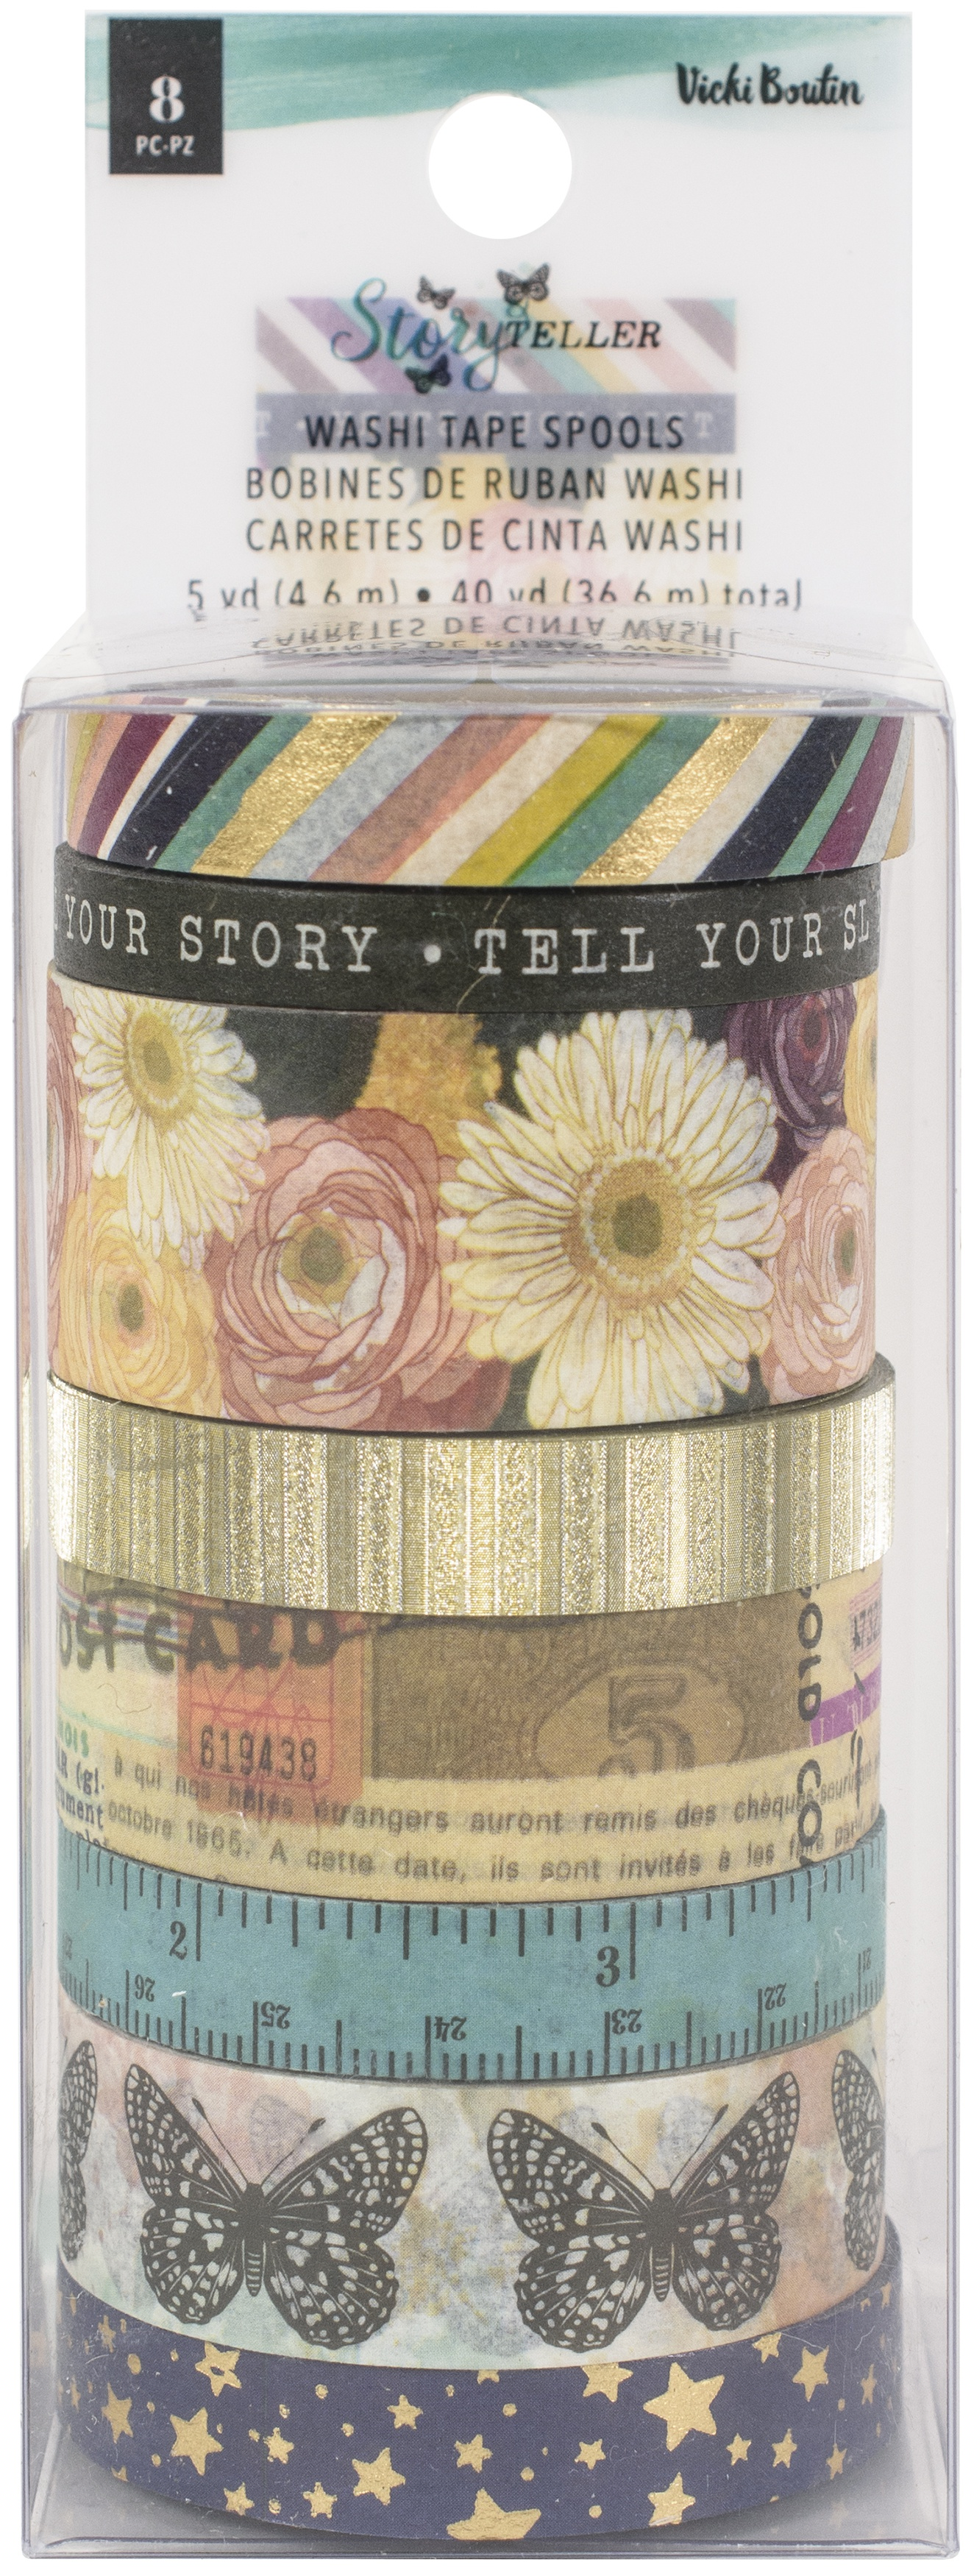 Storyteller Washi Tape 8/Pkg